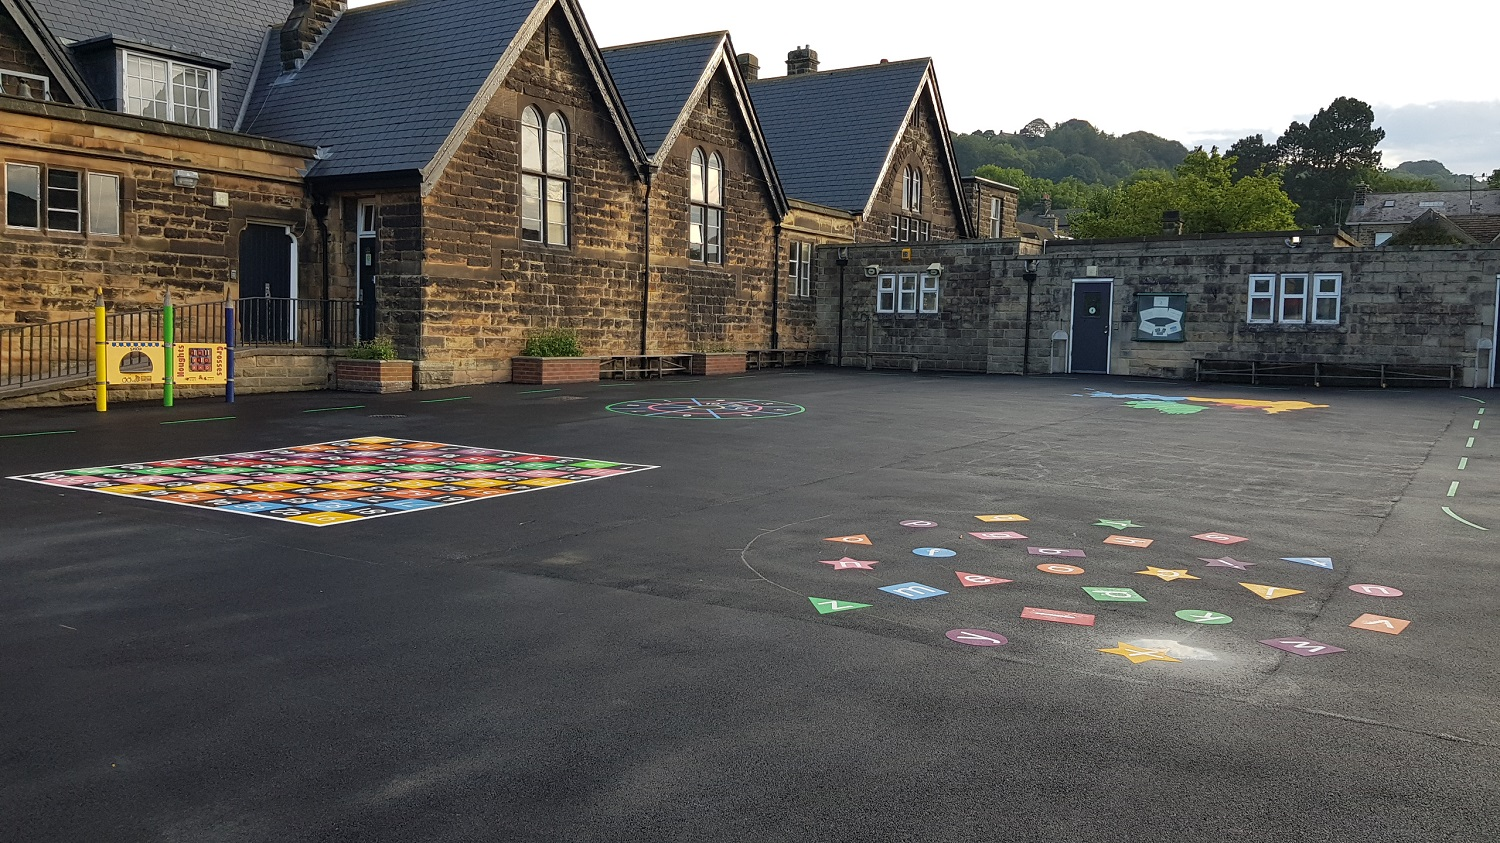 P13 Playground Tarmac Surfacing & Playground Markings at Ashover Primary School in Ashover